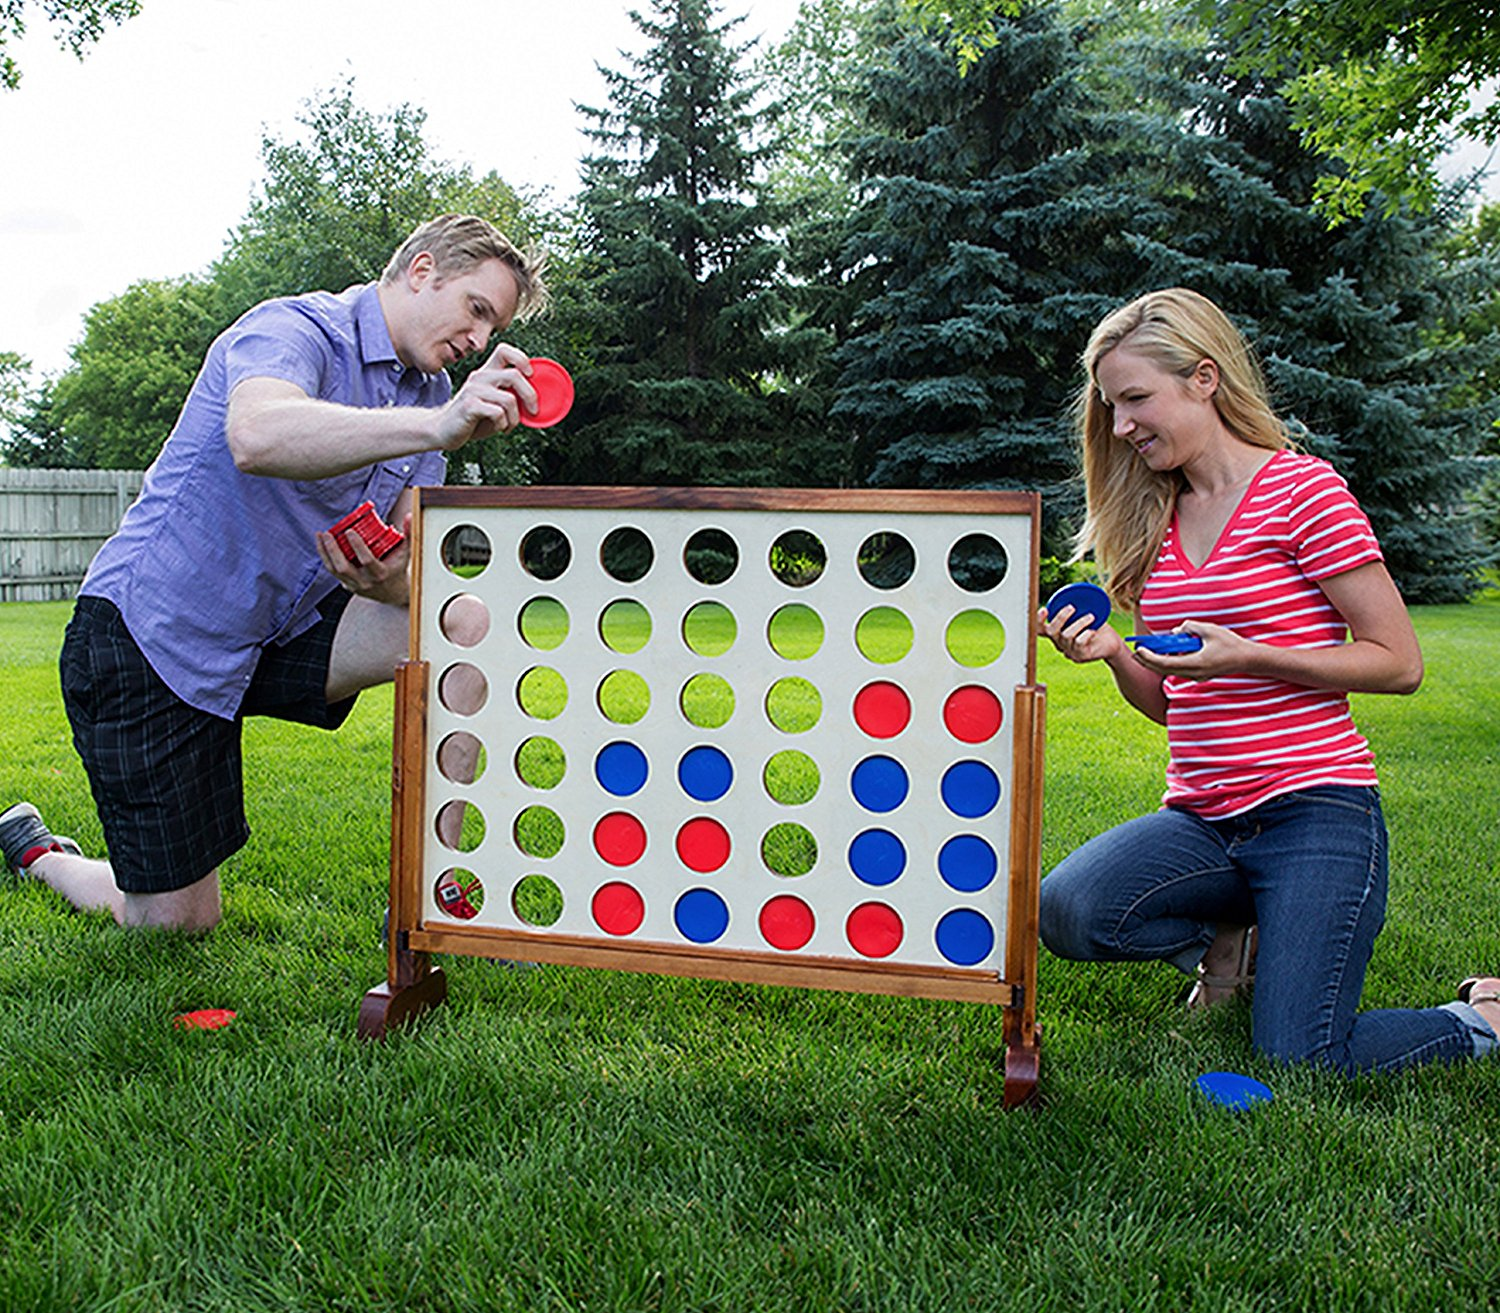 Giant Backyard Games: Didn't Know I Wanted That